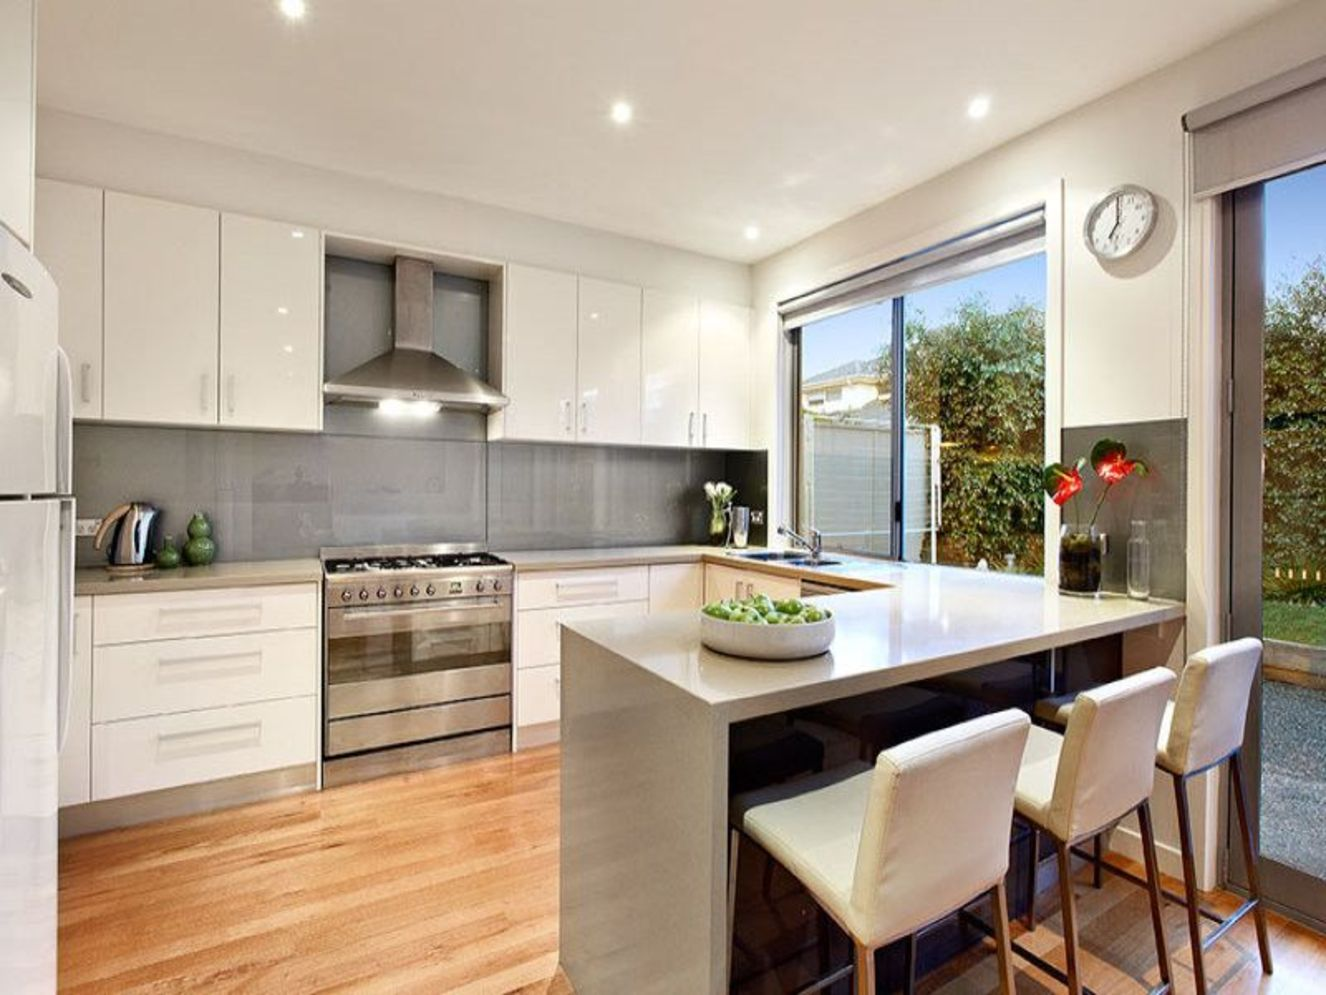 Classy kitchen styles in bold display maximizing concrete benchtop designs Image 16